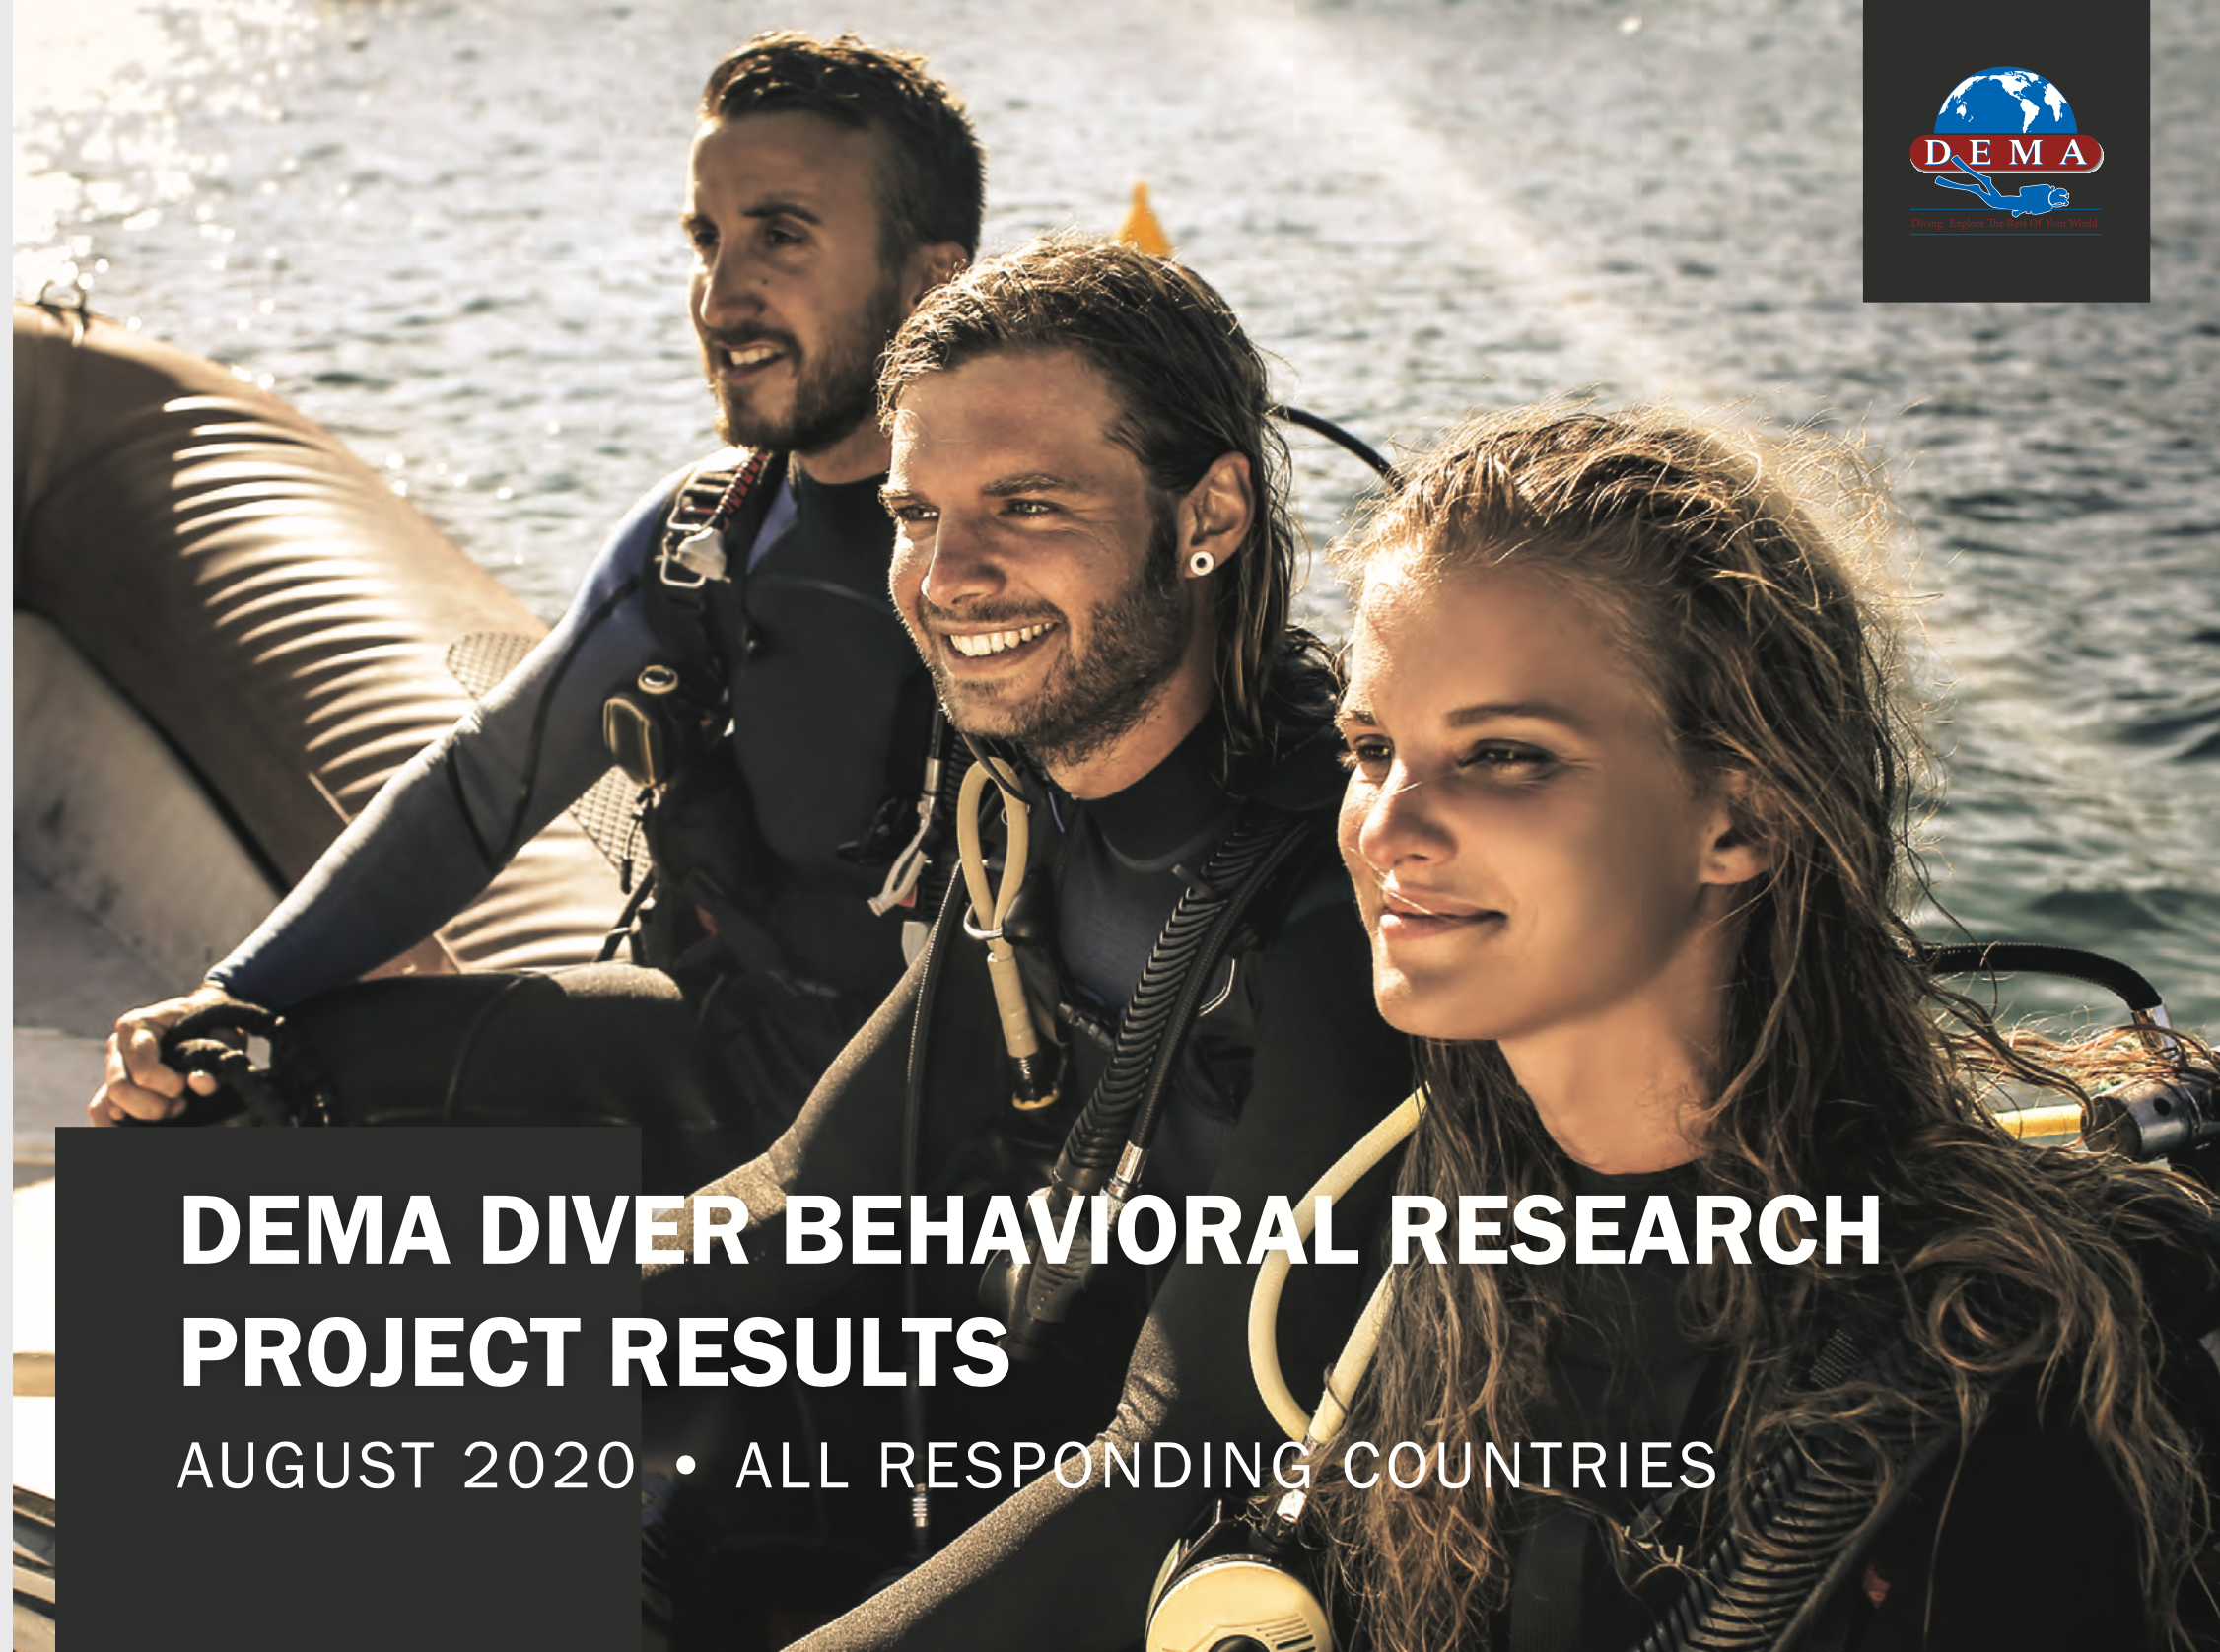 DEMA's Reports on Scuba Diver Demographics and Psychographics